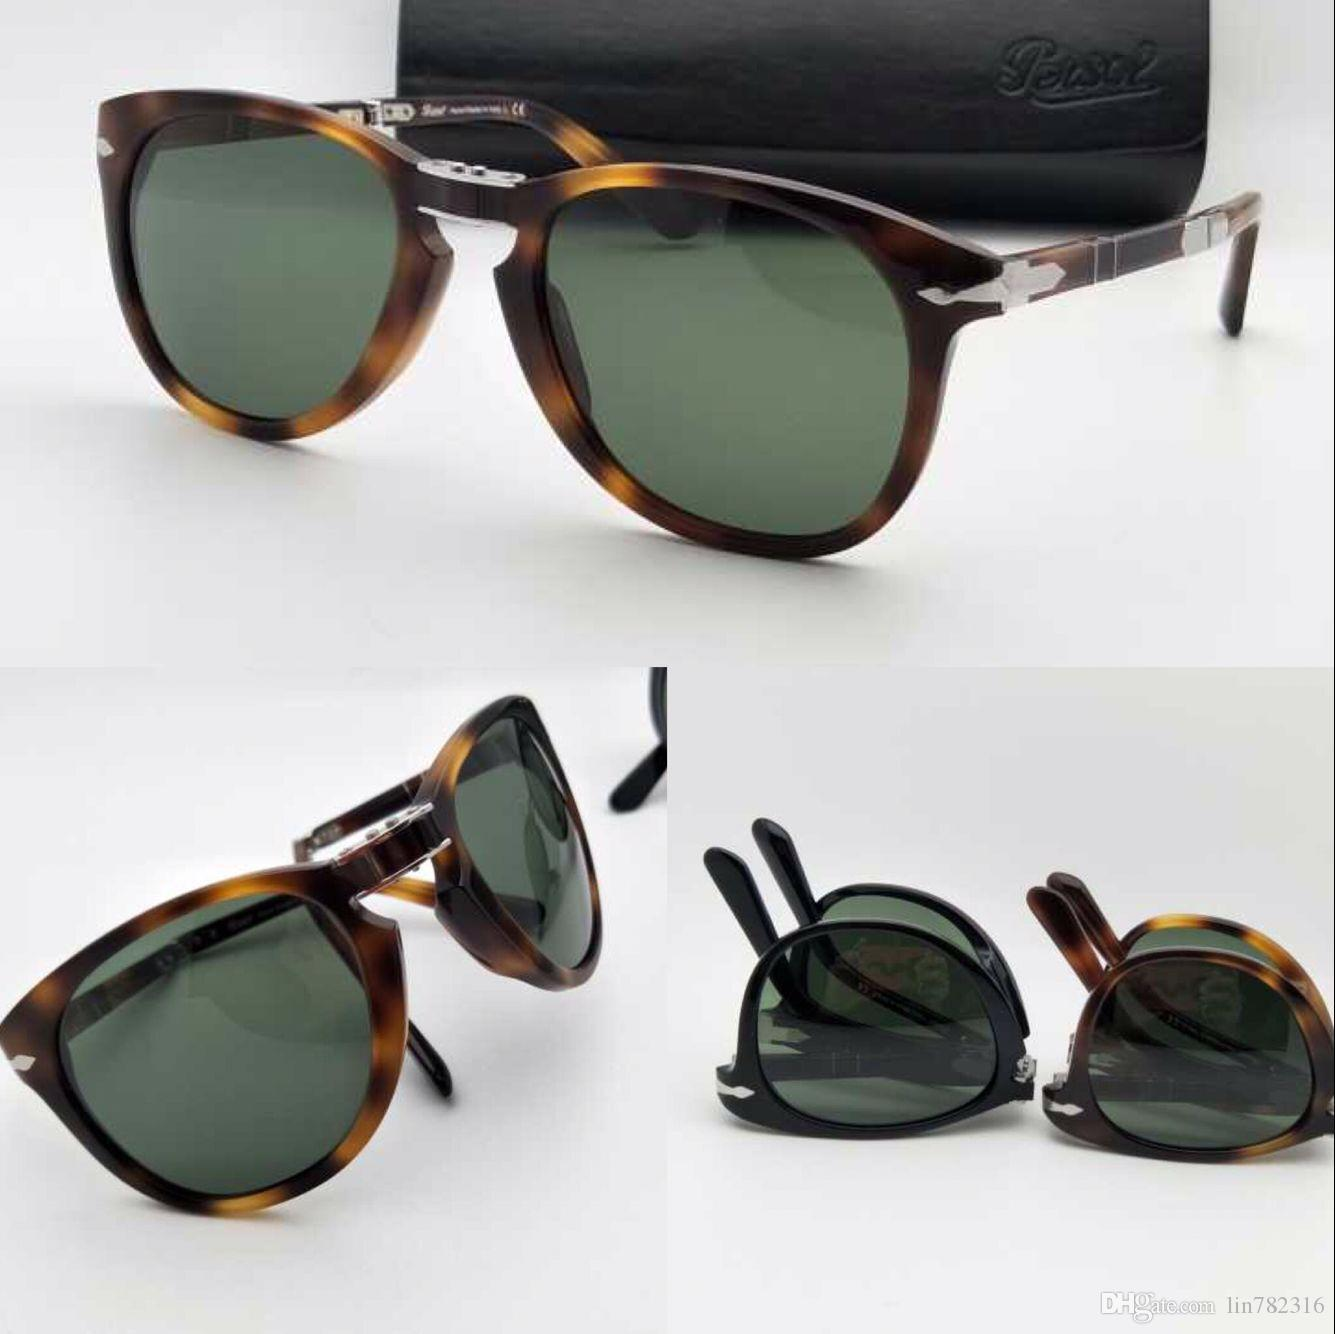 0e900ab637e Persol Sunglasses 714 Men Sunglasses Pilots Shape Plastic Frame Retro Men  Design Glasses Lenses Classic Design Folding Style Italian Designe  Sunglasses For ...